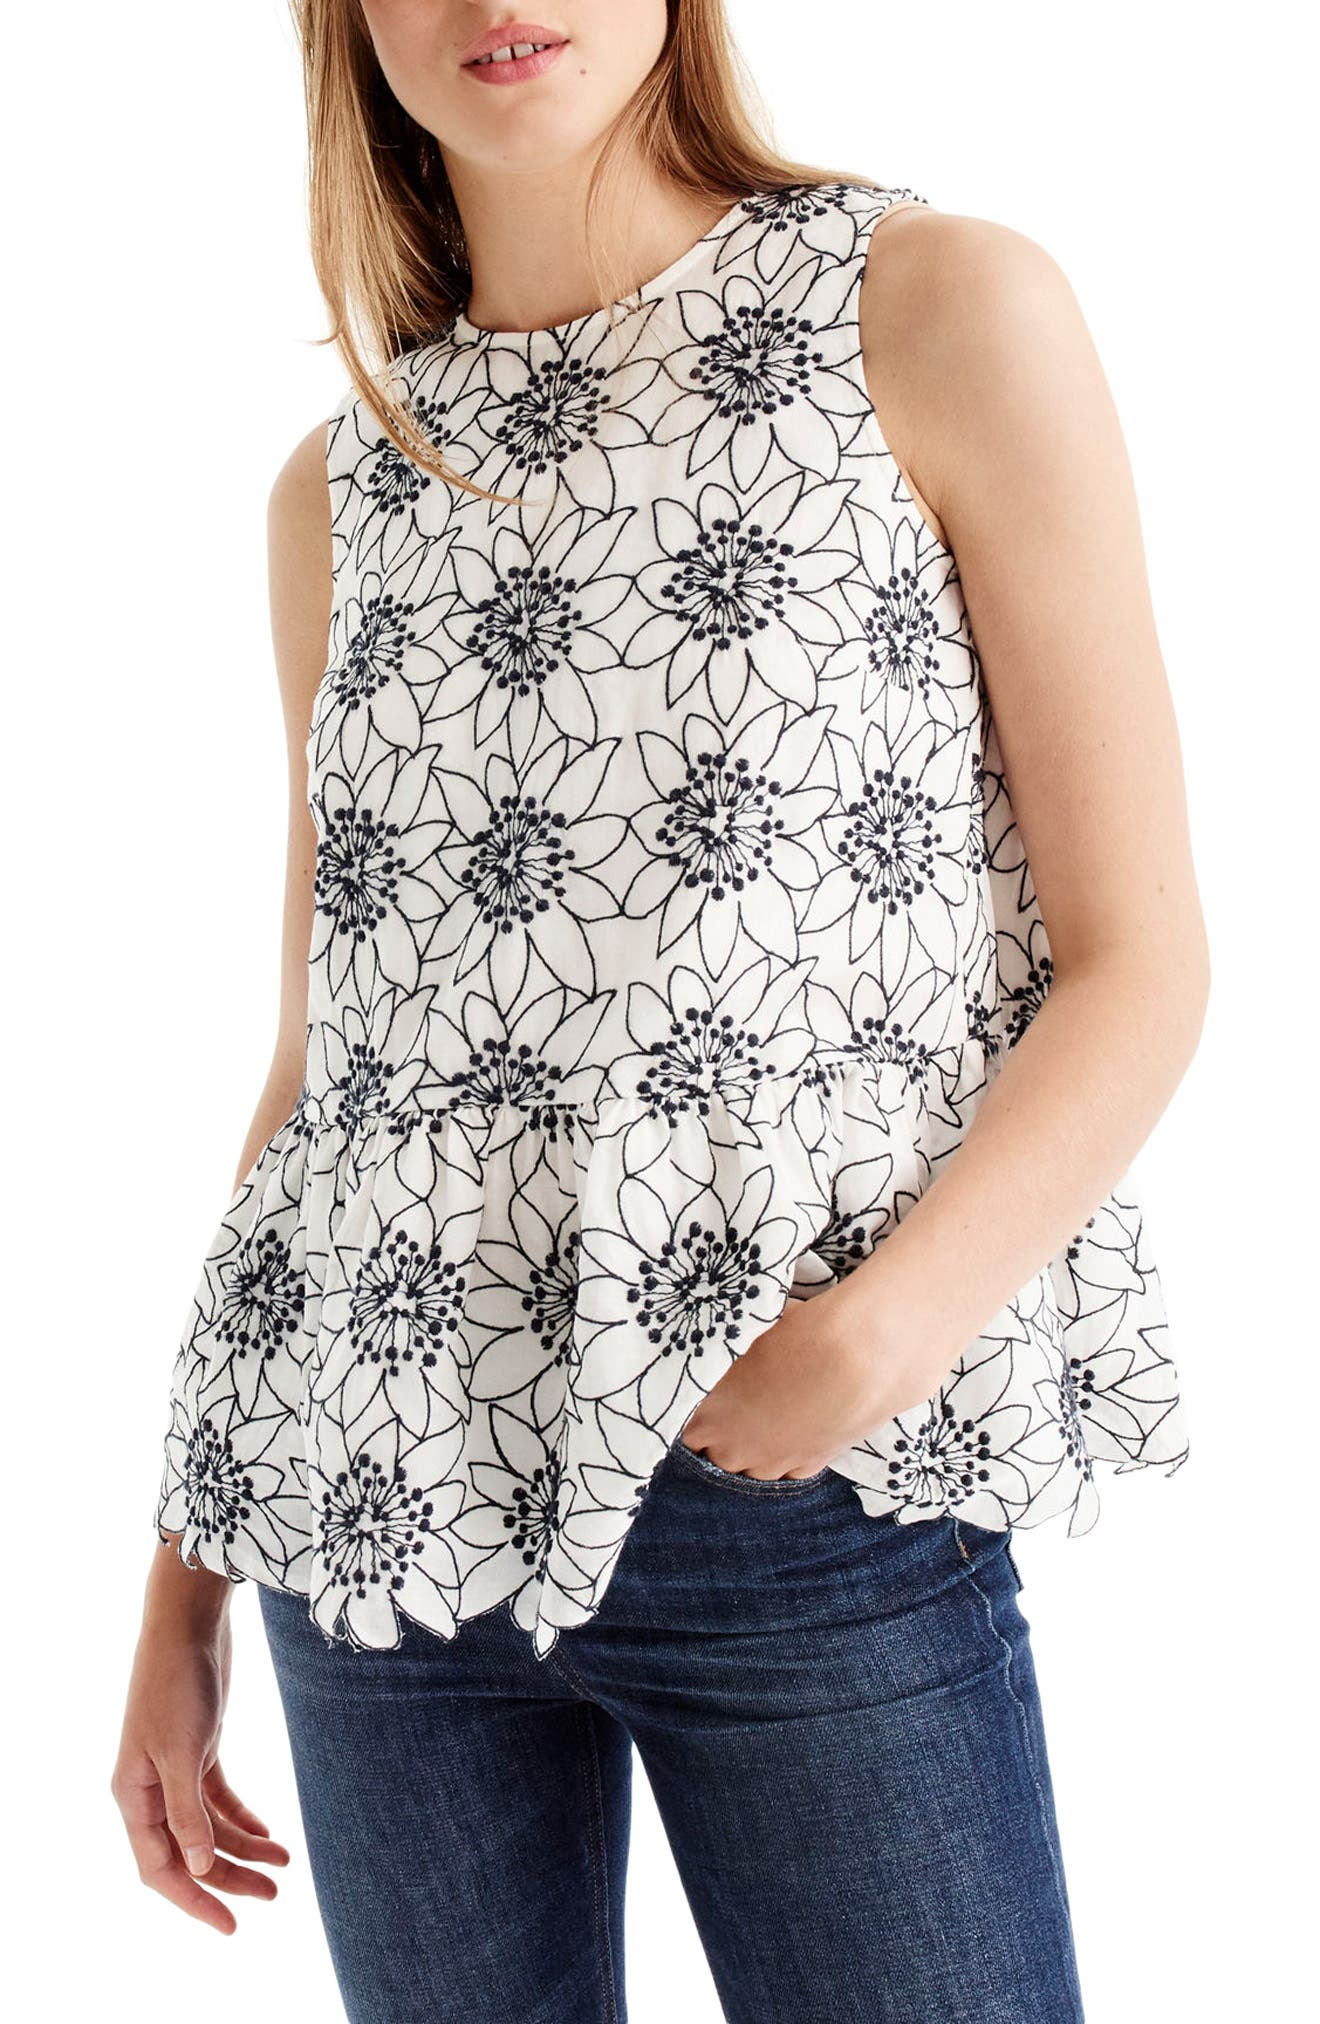 J.Crew Embroidered Floral Top (Regular & Petite)